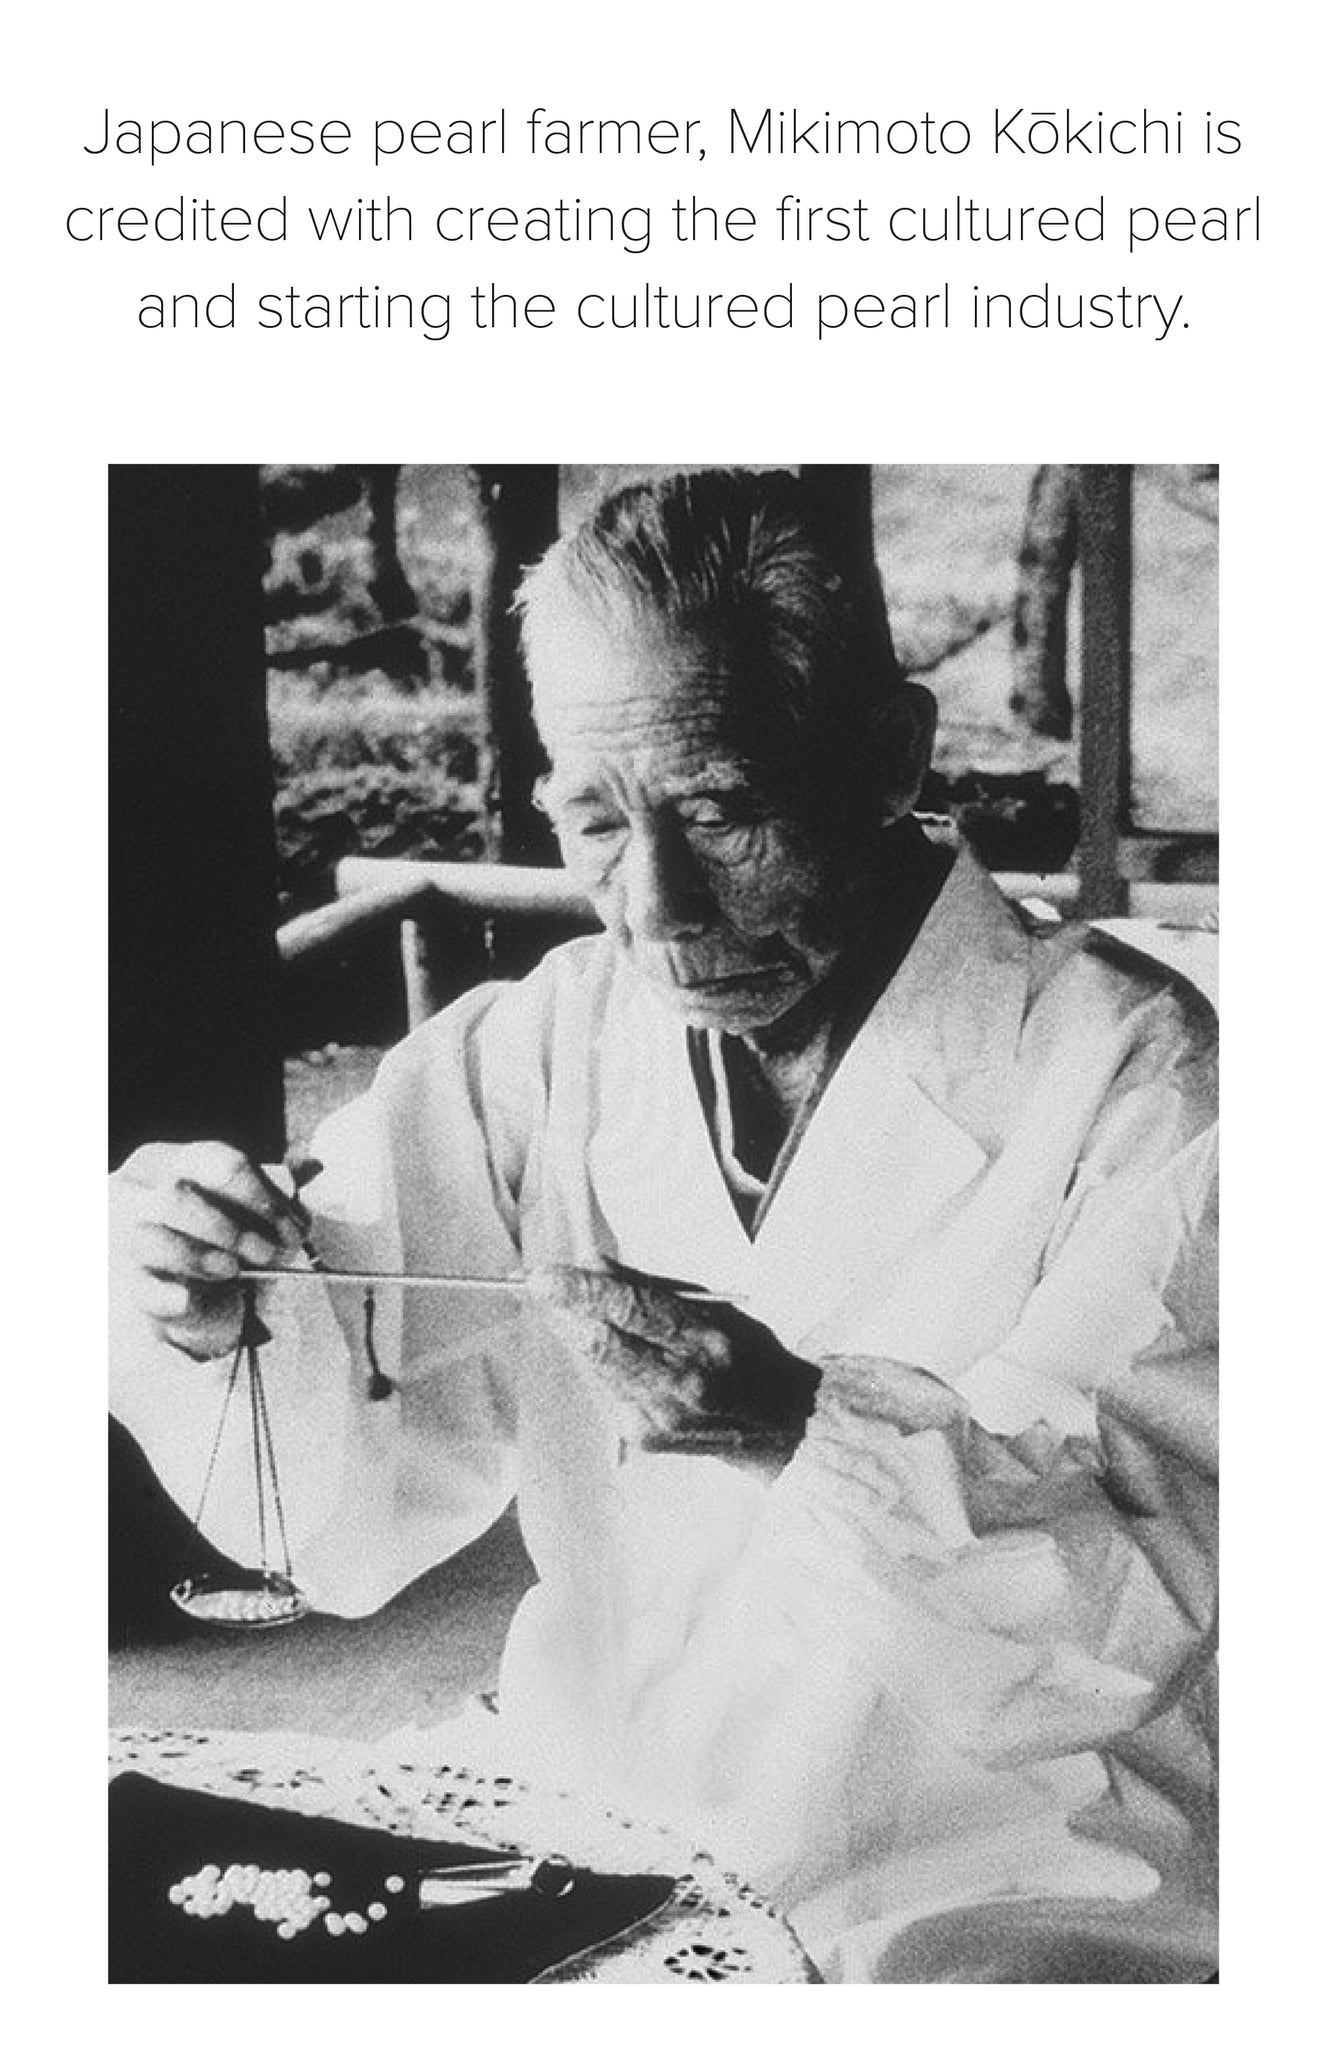 Japanese pearl farmer, Mikimoto Kōkichi is credited with creating the first cultured pearl and starting the cultured pearl industry.